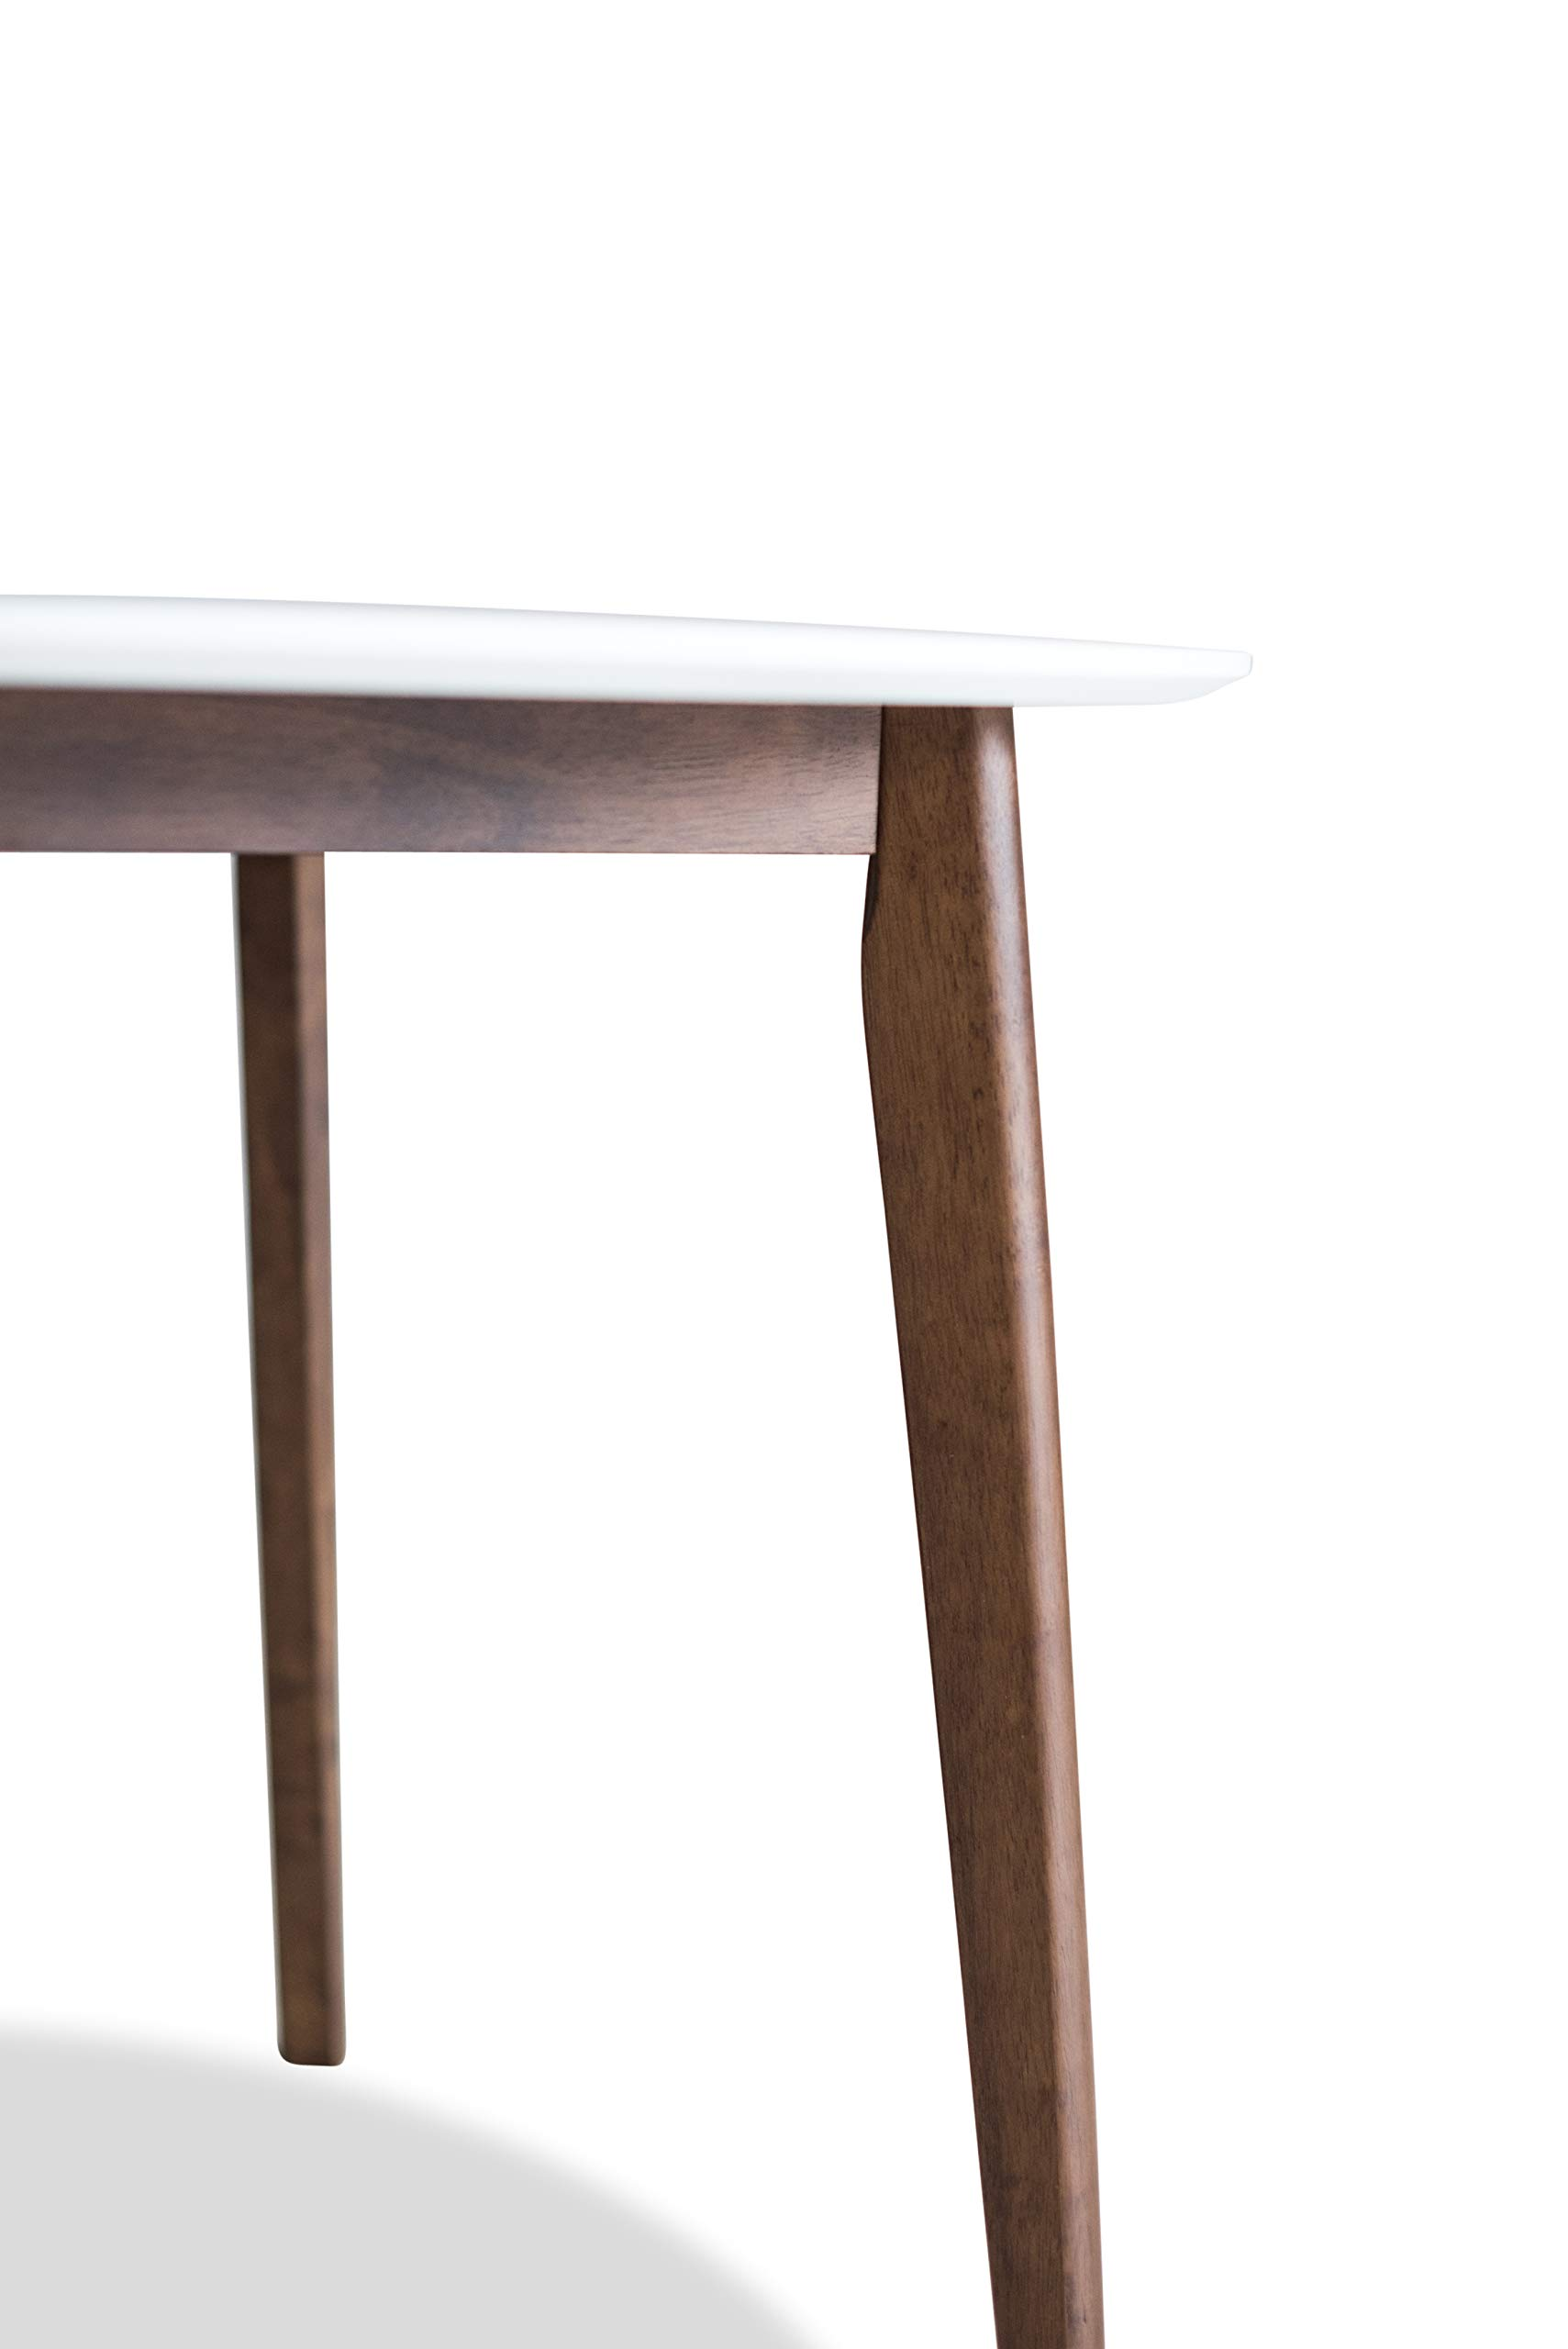 Edloe Finch Dakota Mid-Century Modern 5 Piece Round Dining Table Set for 4, White Top by Edloe Finch (Image #12)